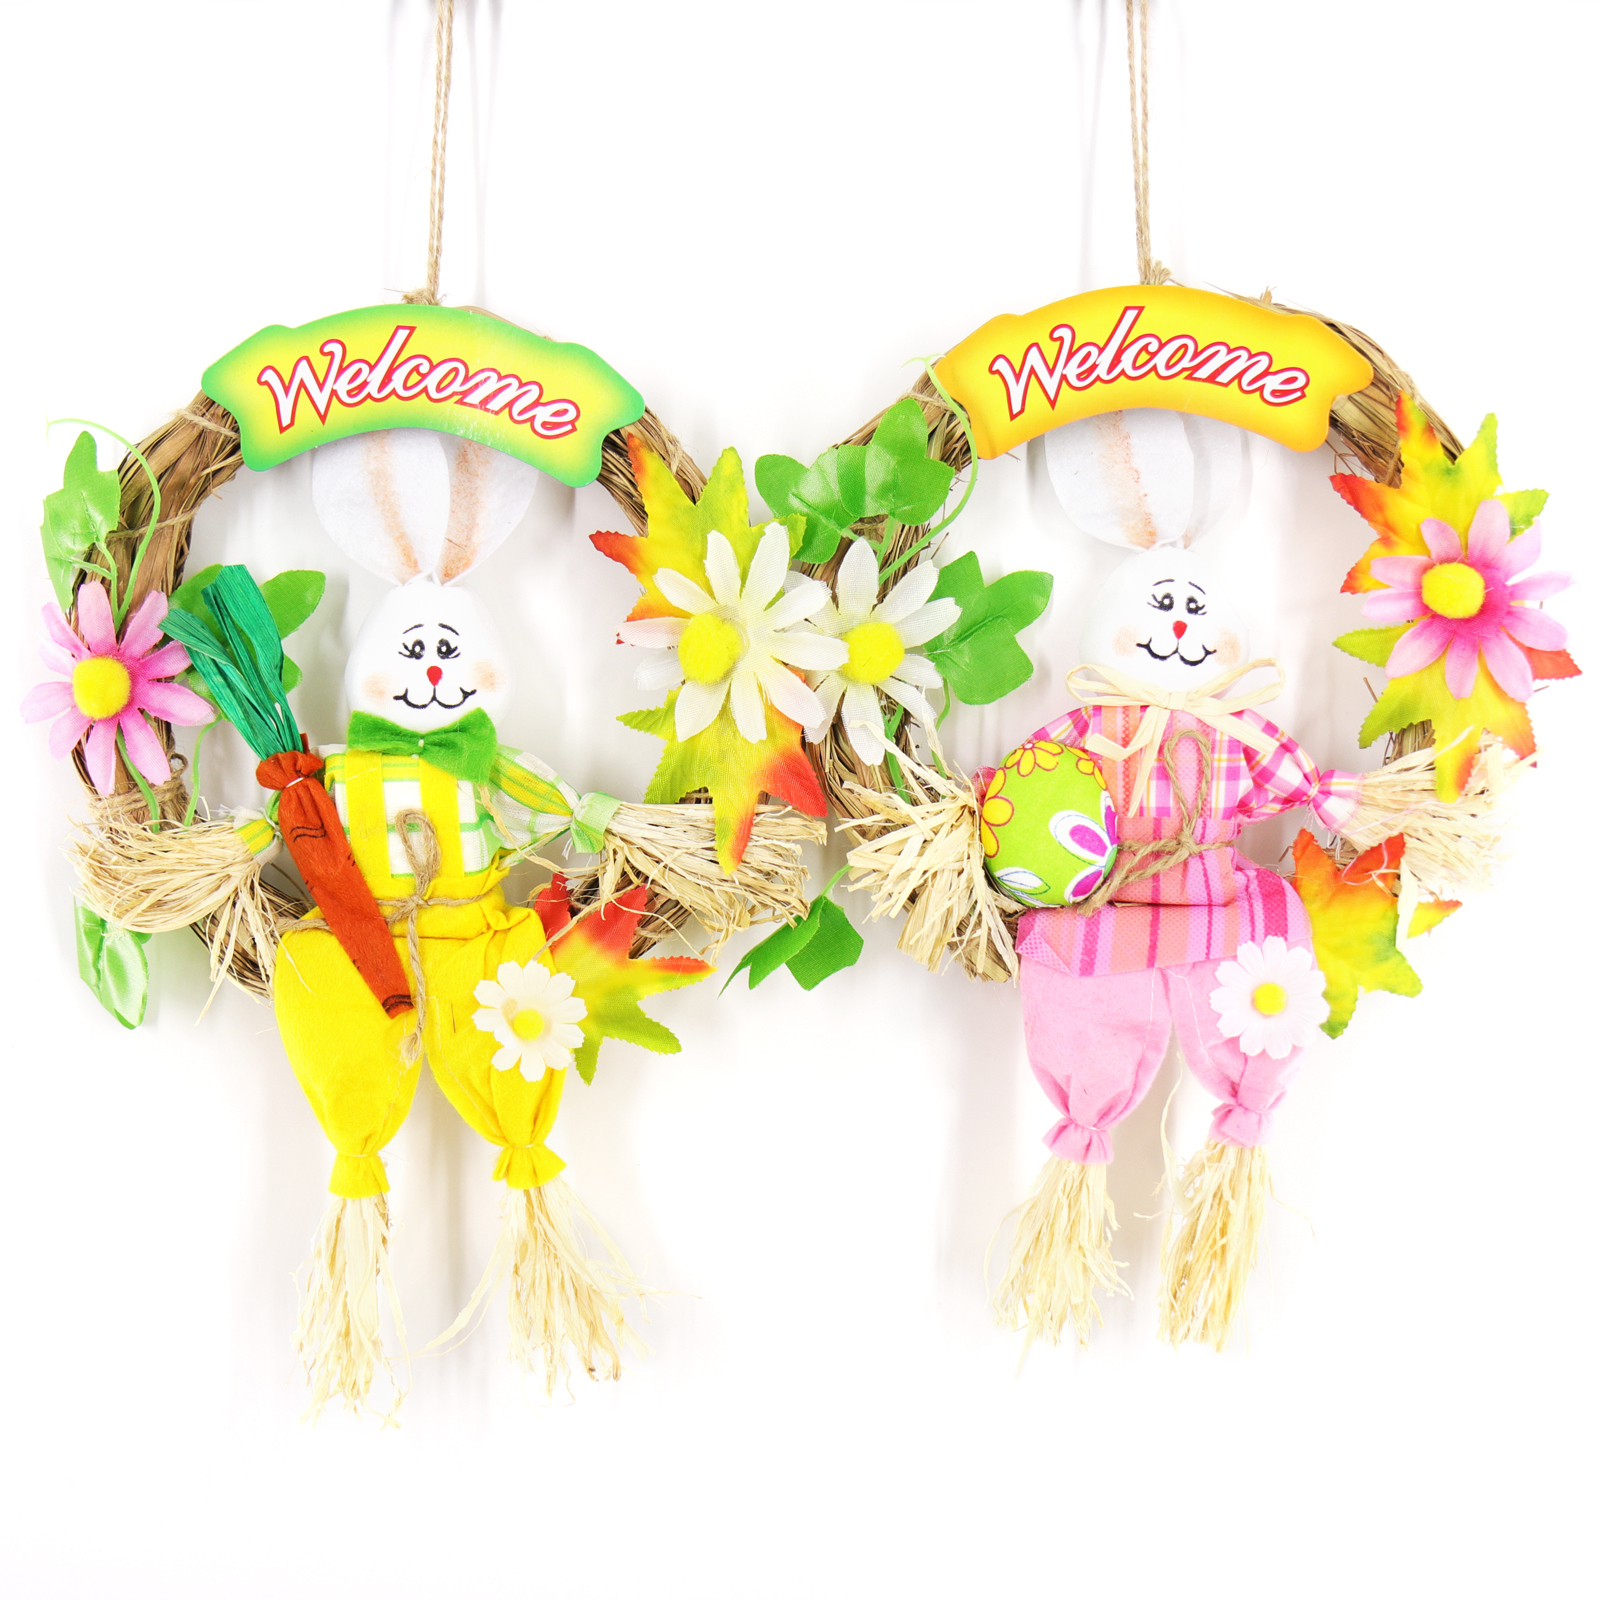 Beads Toys  Straw Cute Easter Rabbit Easter Rabbit With Carrot Wreath Garland Party Door Decoration Easter  Crafts For Kids